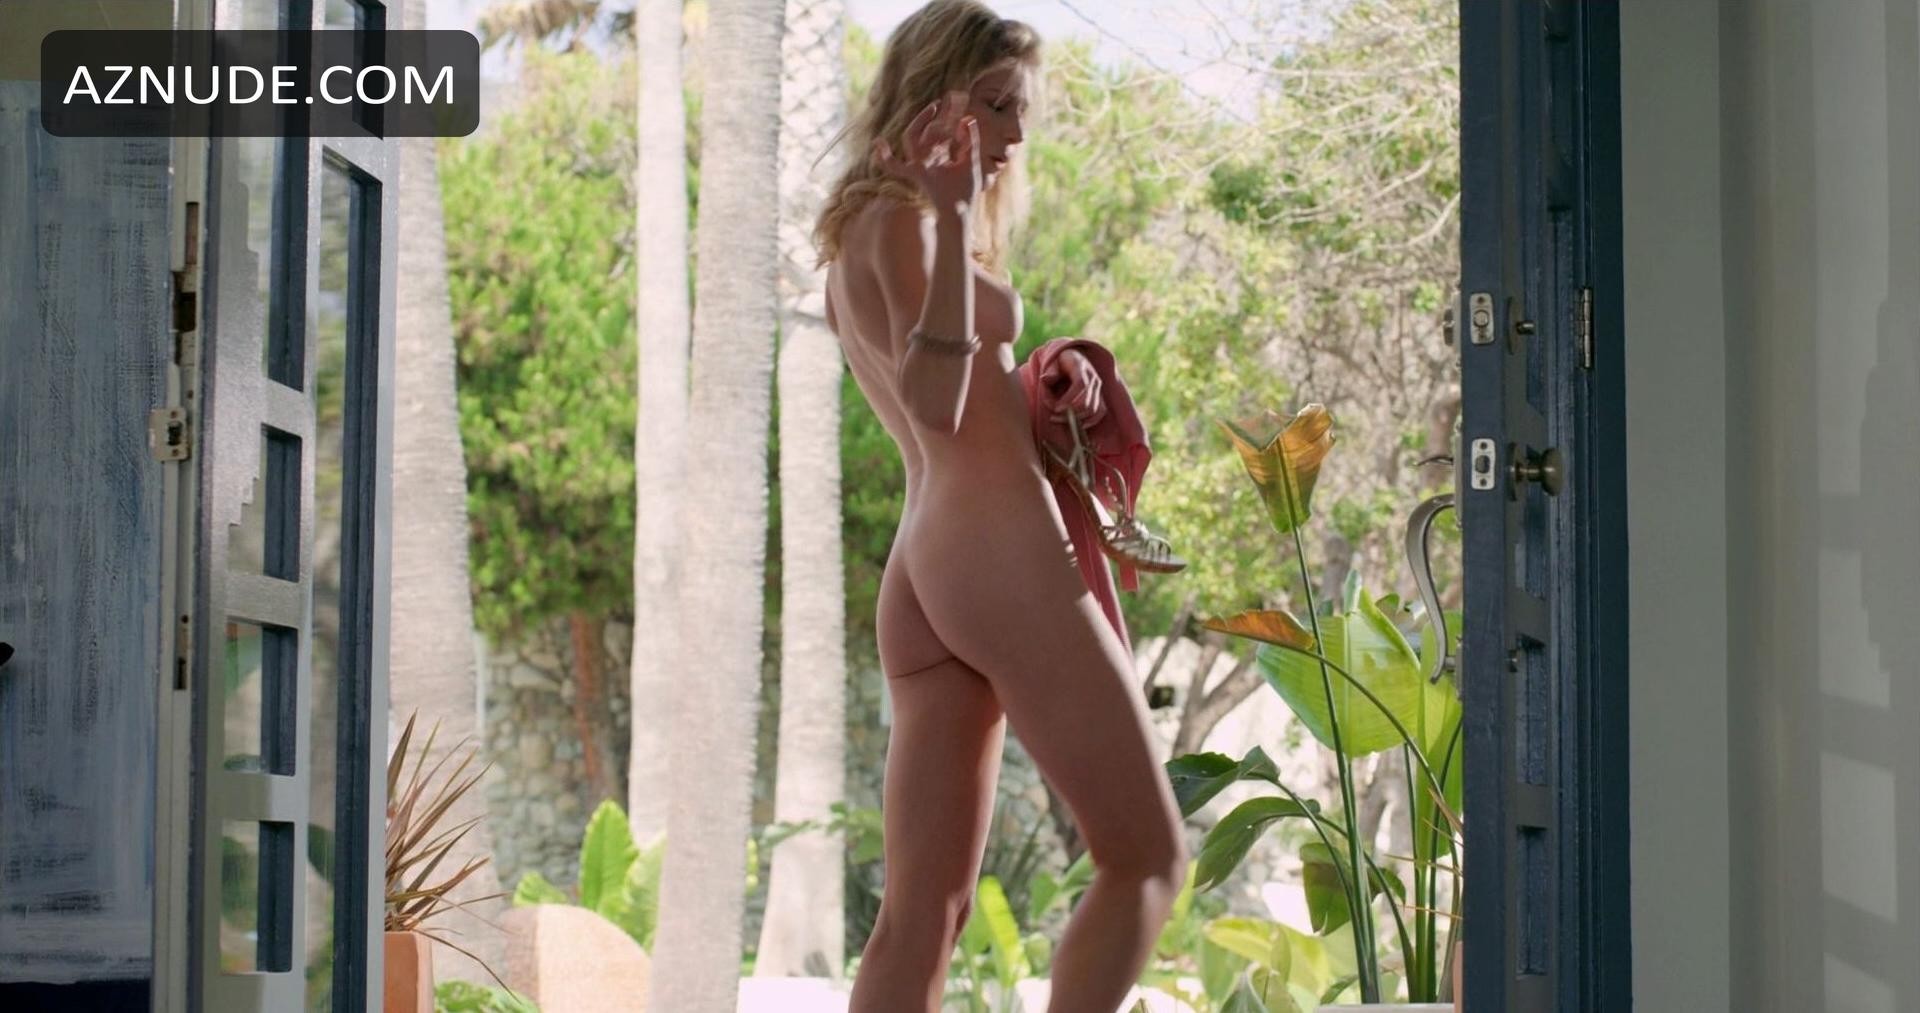 Mindy robinson nude in chicks dig gay guys scandalplanetcom - 3 part 4